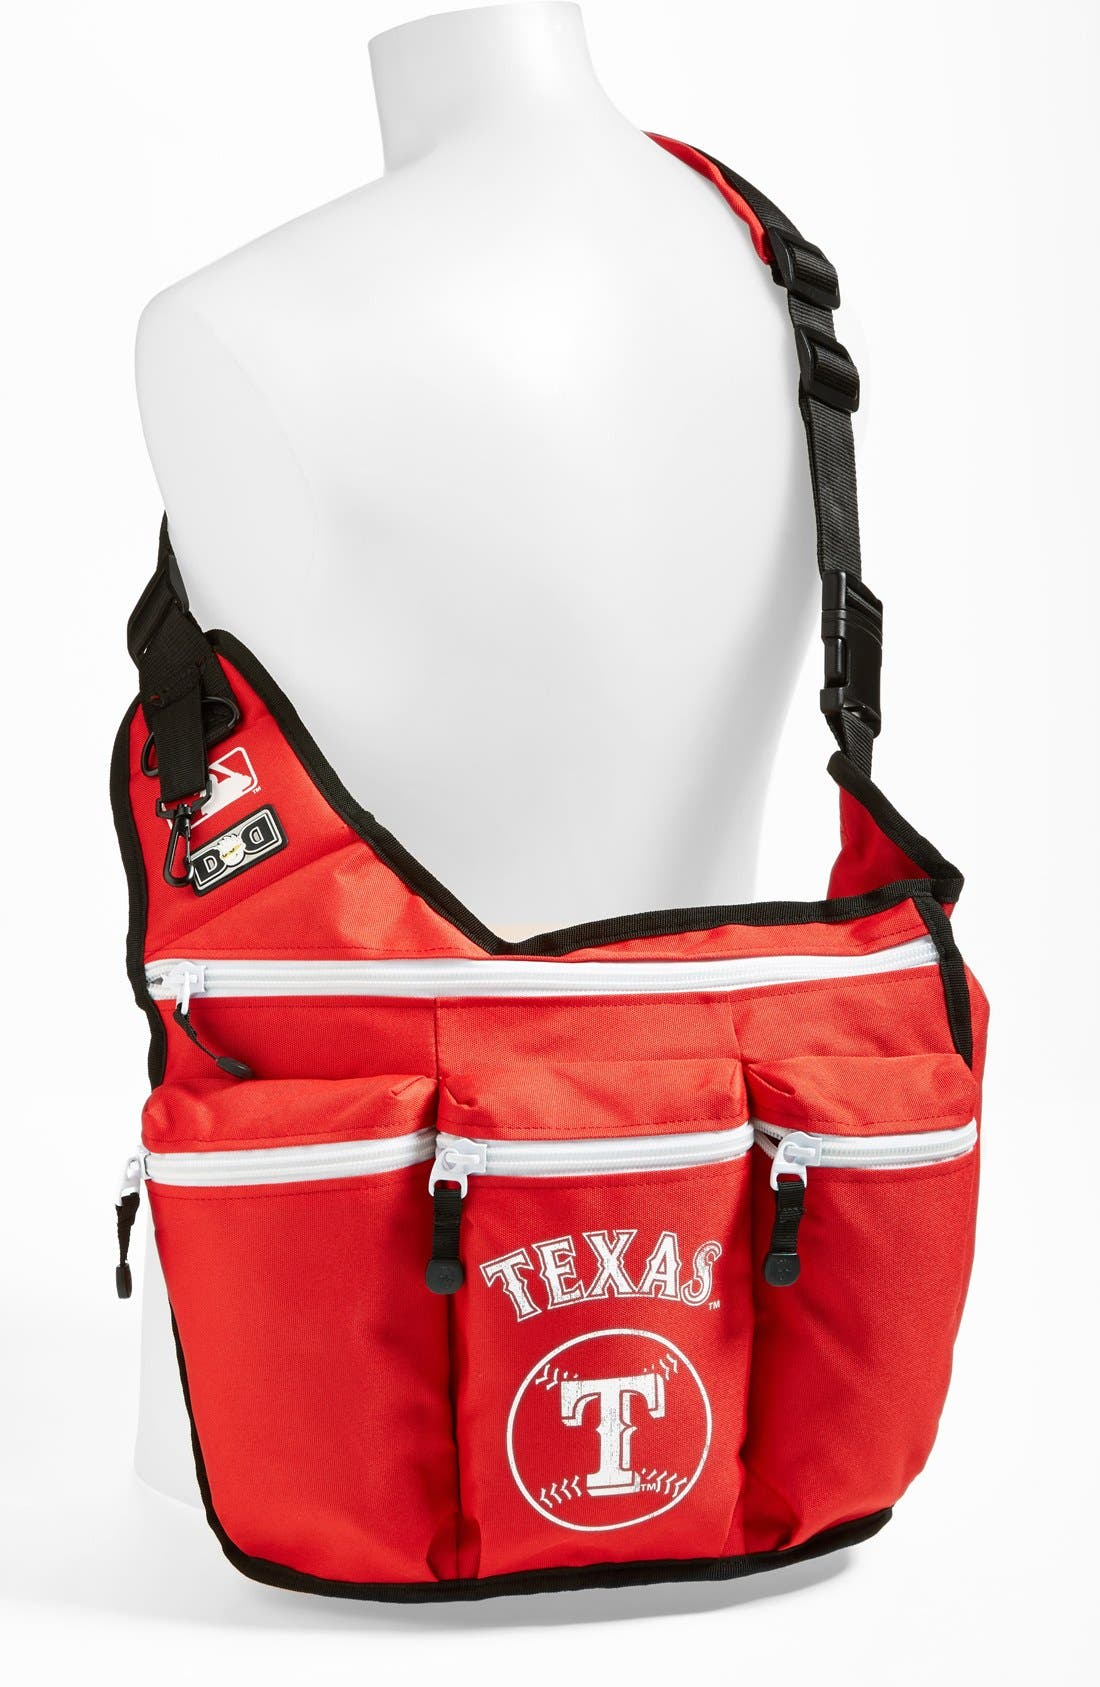 'Texas Rangers' Messenger Diaper Bag,                             Alternate thumbnail 2, color,                             Red